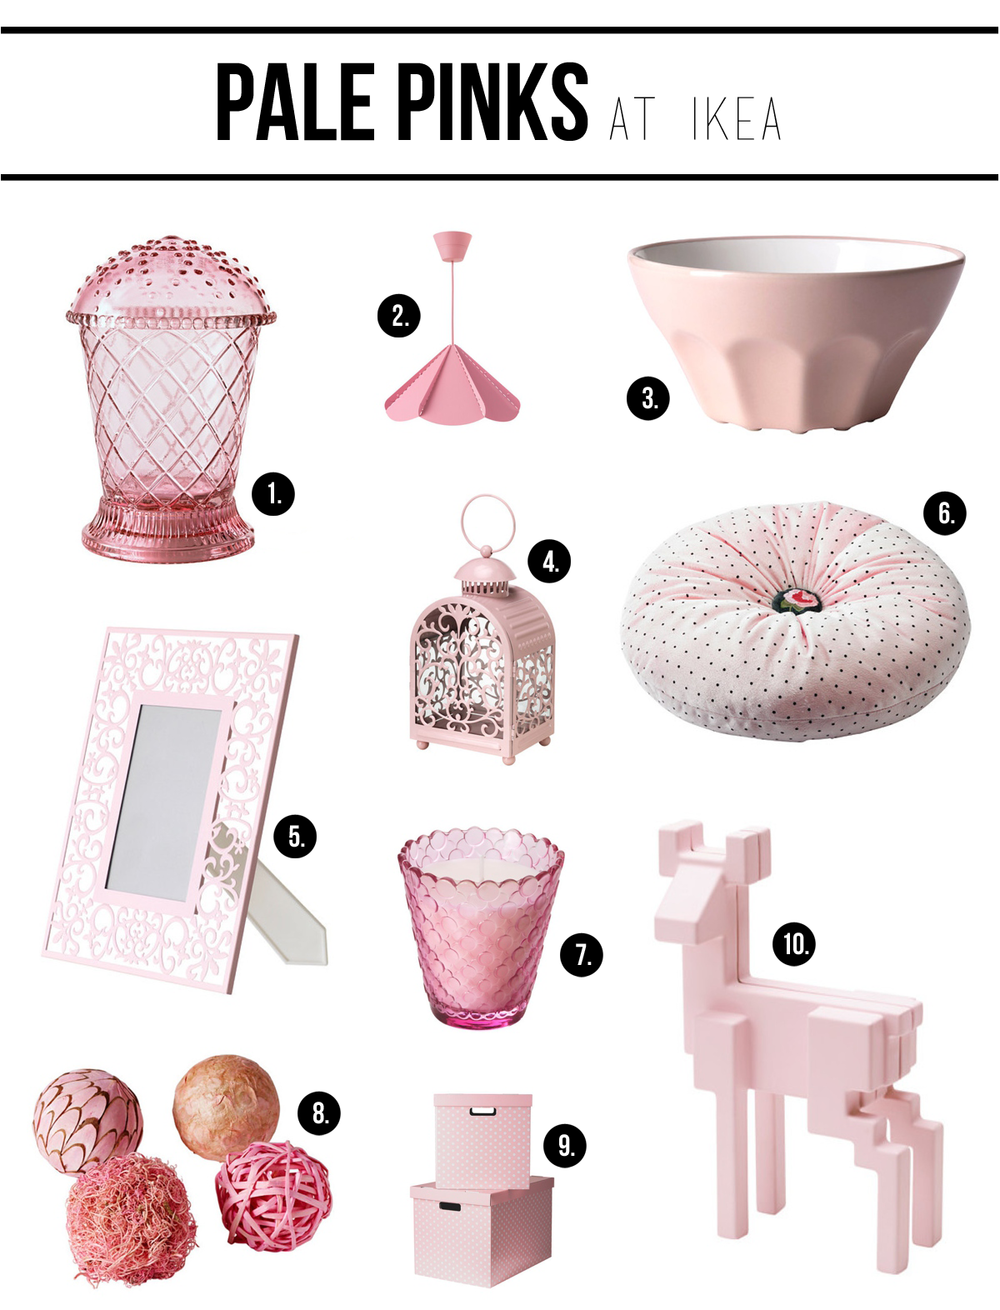 varby-led-table-lamp-pink__0275924_PE414017_S4.png